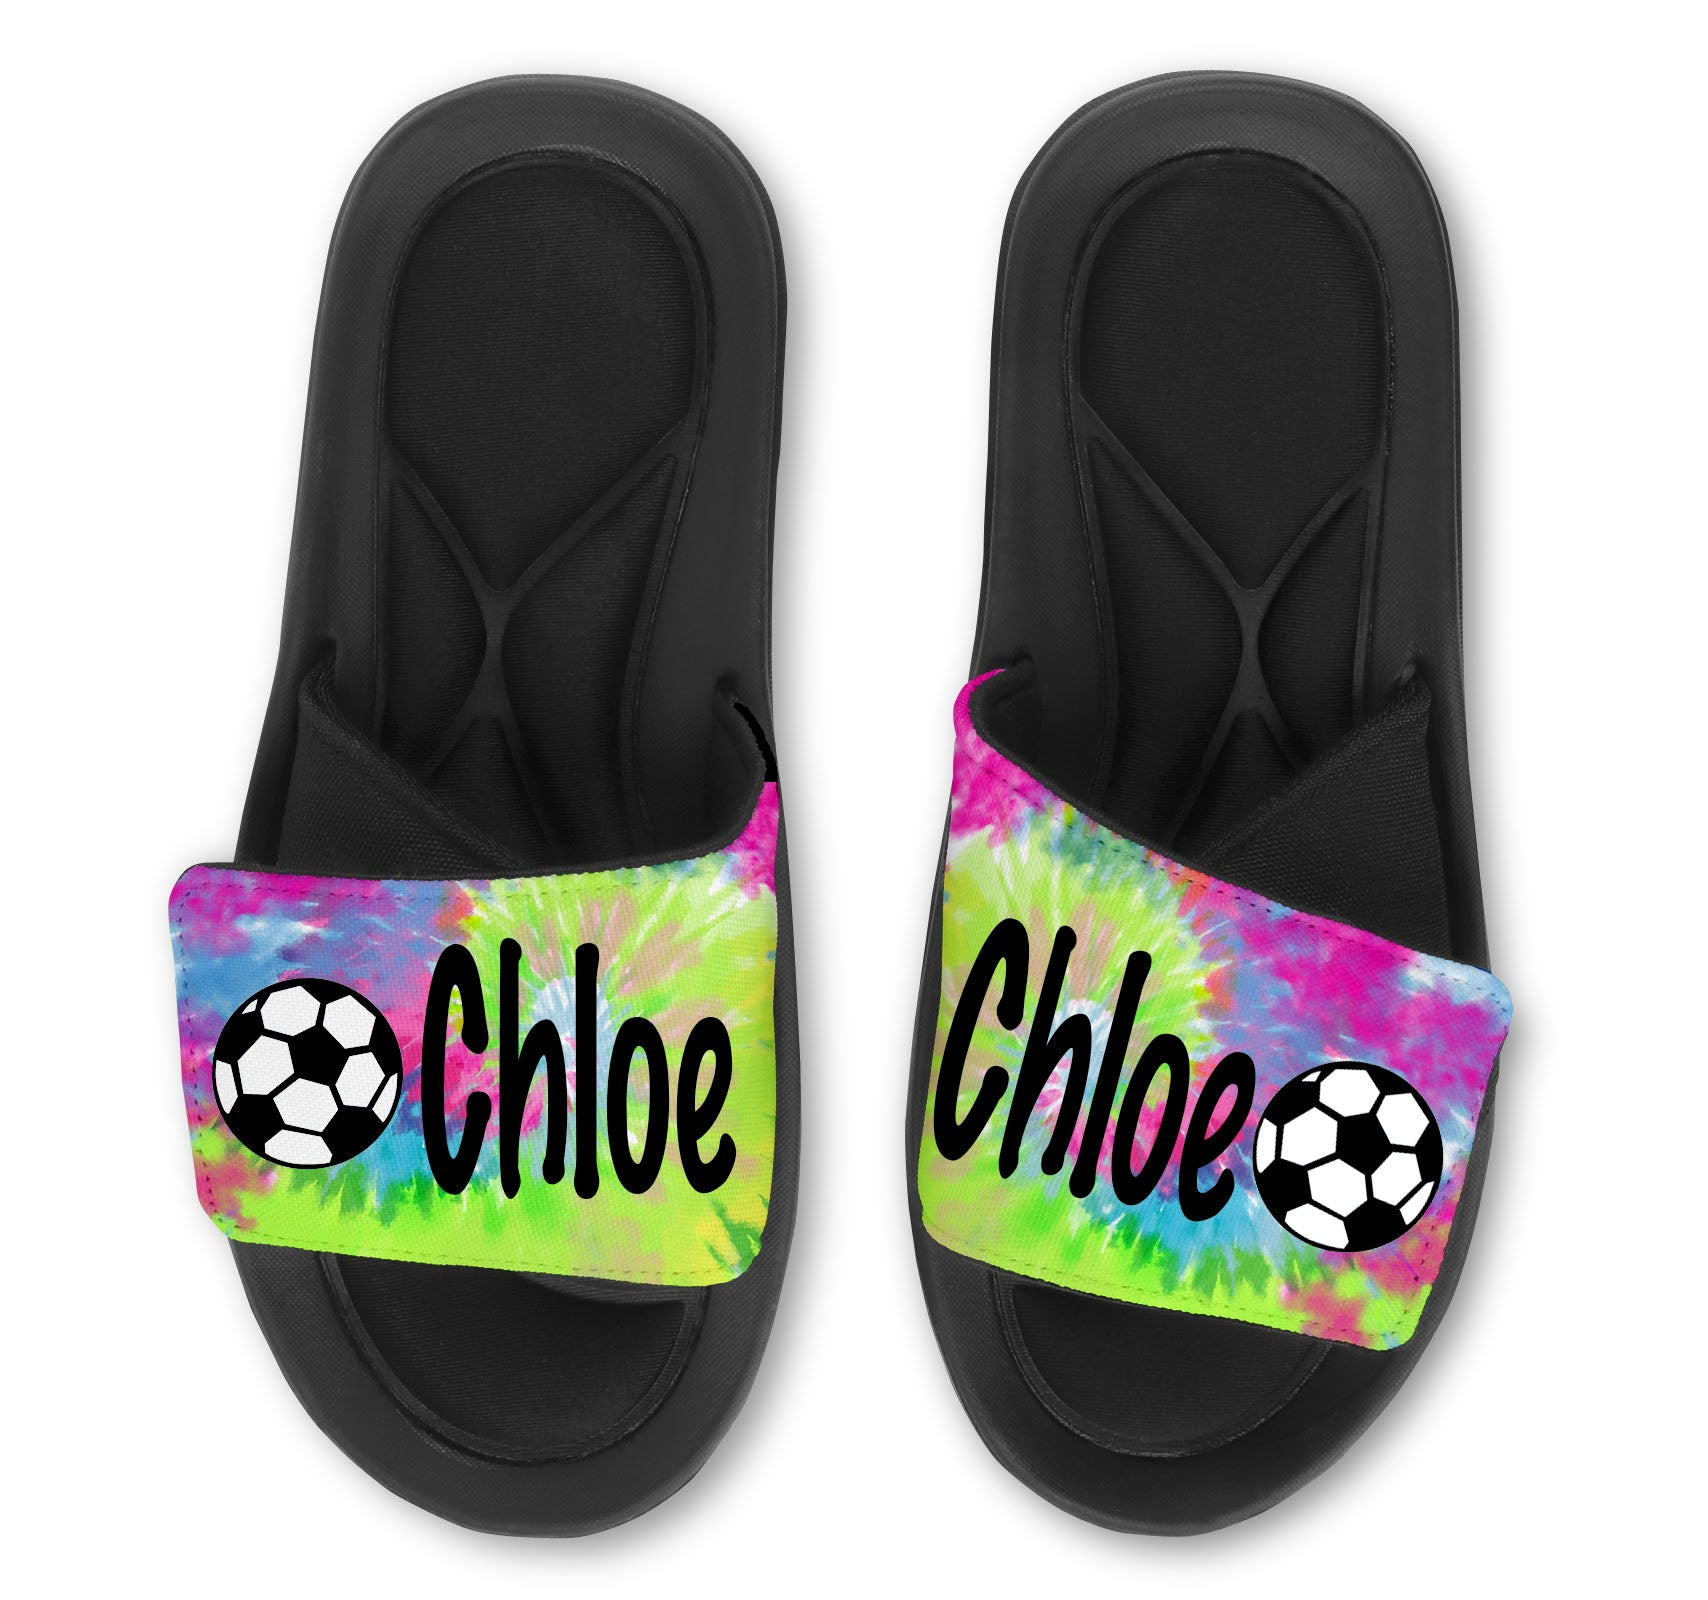 Soccer Tie Dye Custom Slides / Sandals - Choose your Background!